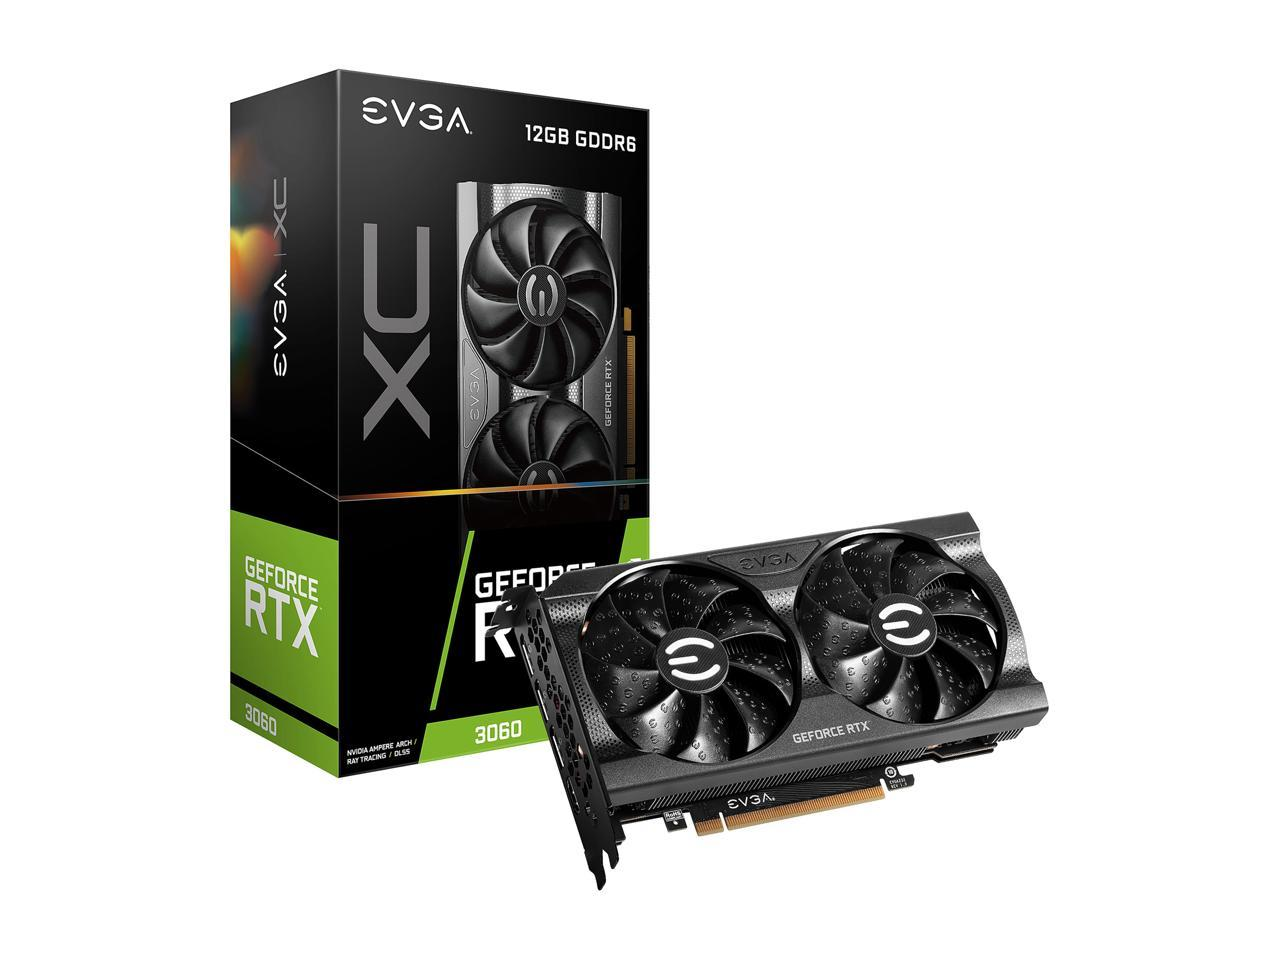 EVGA GeForce RTX 3060 XC GAMING, 12G-P5-3657-KR, 12GB GDDR6, Dual-Fan, Metal Backplate  + Zotac ZBOX CI329 NANO BUNDLE IN STOCK